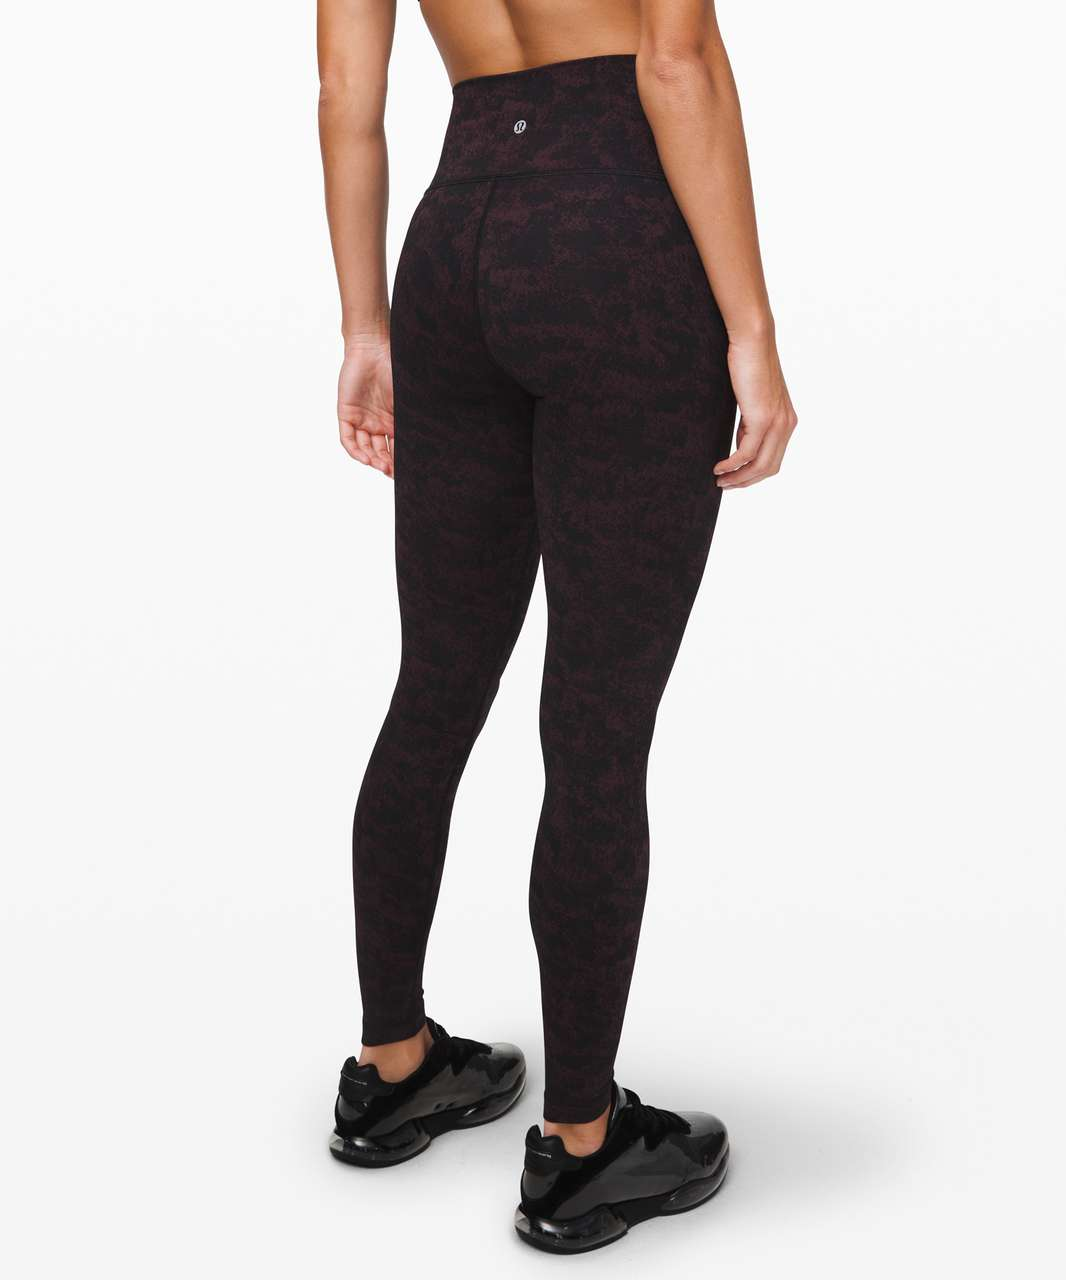 "Lululemon Wunder Under High-Rise Tight 28"" *Luxtreme - Misted Jacquard Black Black Cherry"